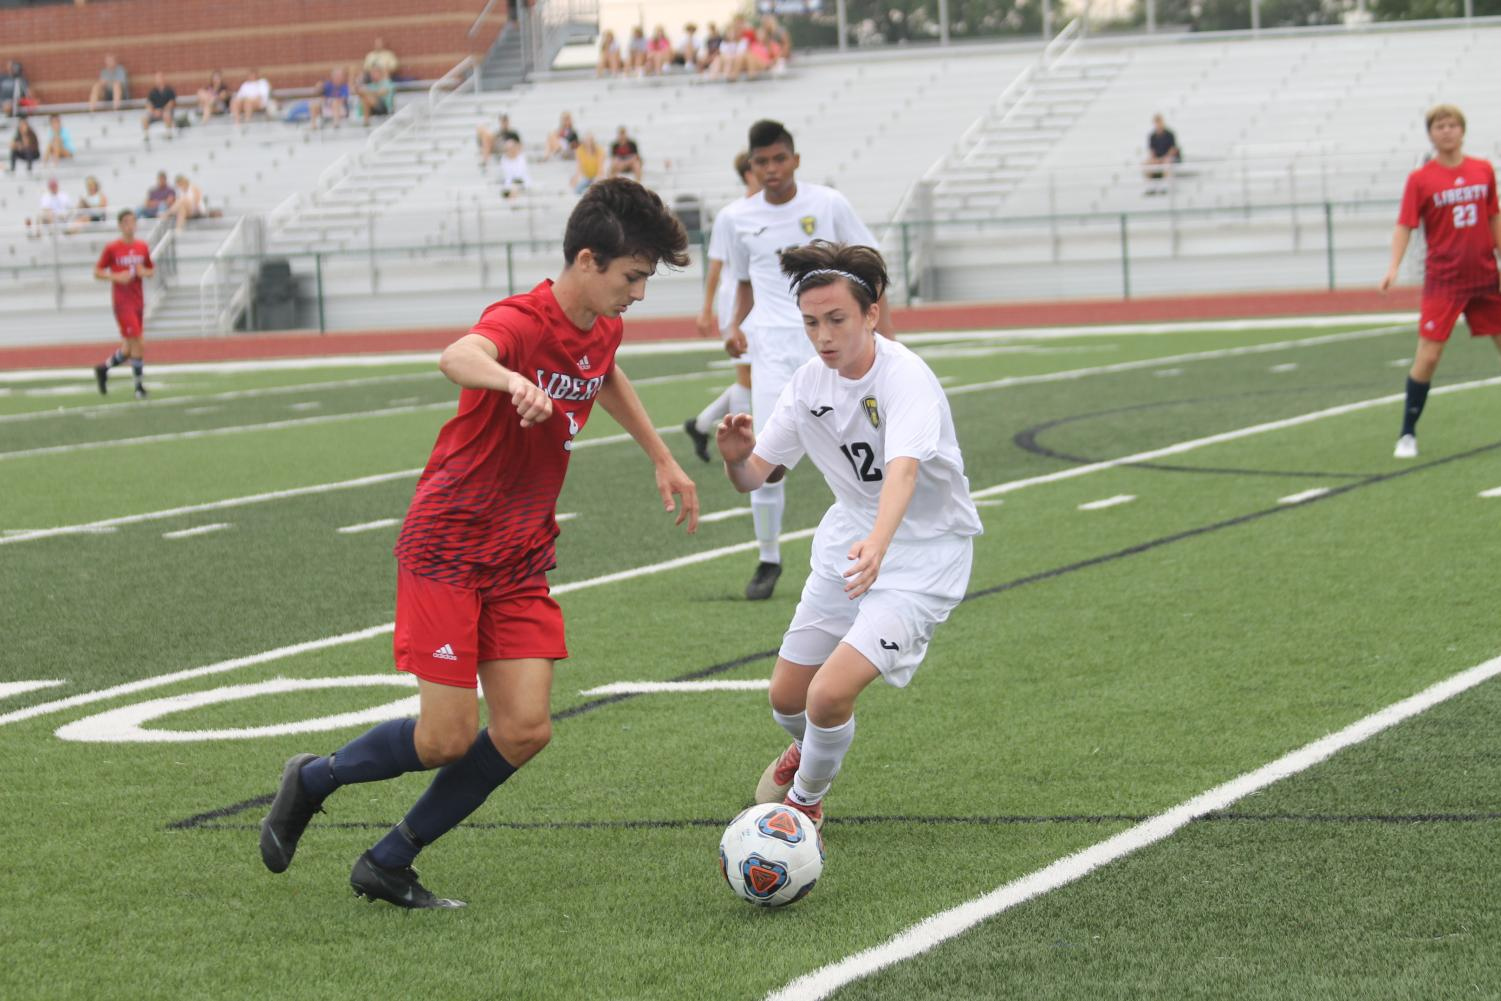 Freshman Cannon Murray attempts to regain possession of the ball in a match against Liberty High School.